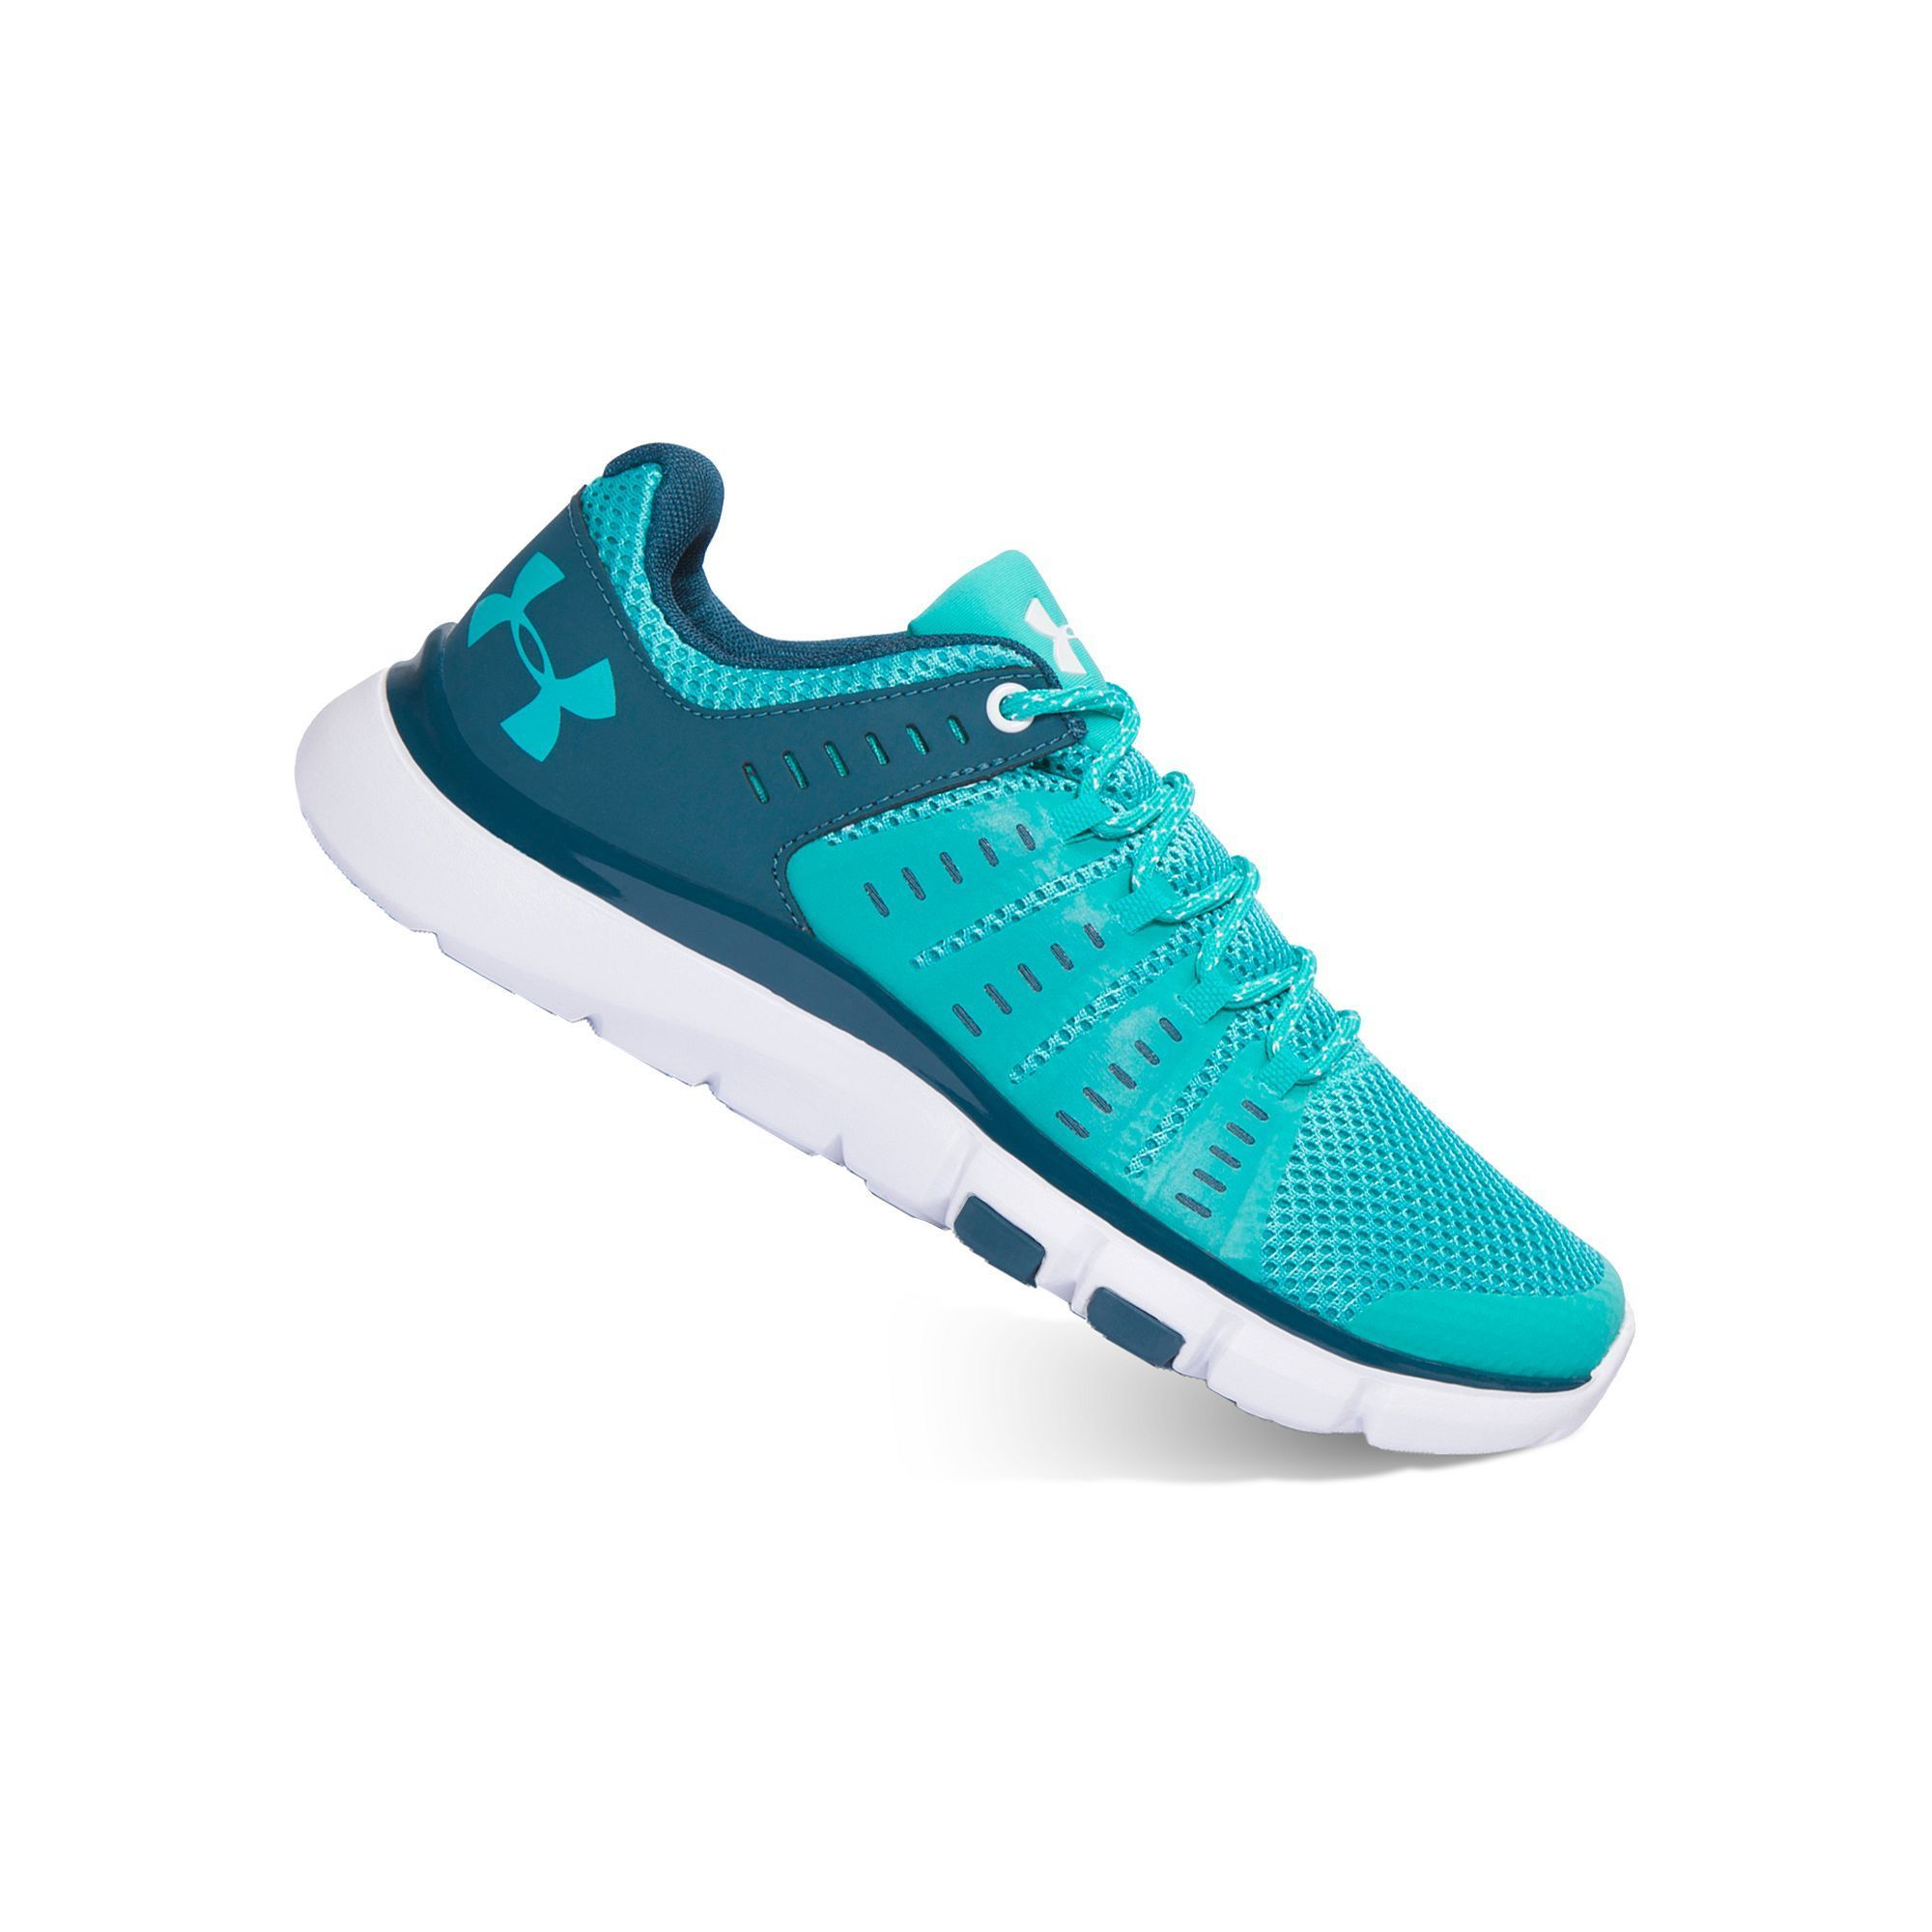 new concept a32d1 6a9d8 Under Armour Micro G Limitless 2 Women's Training Shoes ...